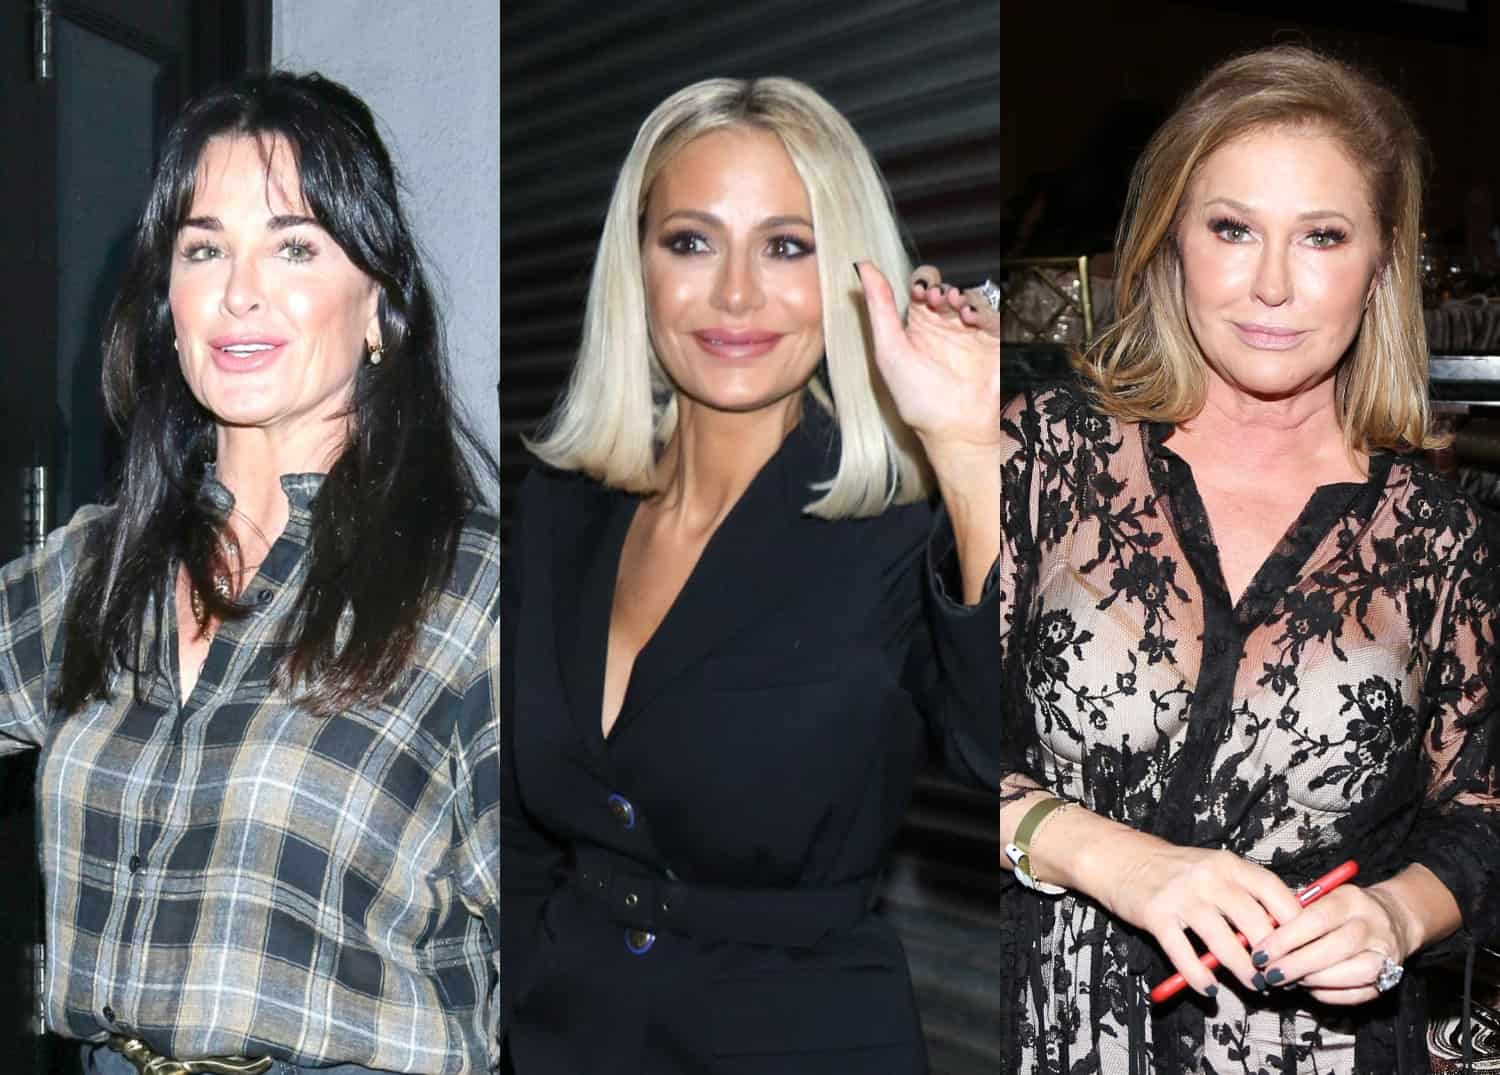 Kyle Richards and Dorit Kemsley Test Positive For Coronavirus Amid RHOBH Production Halt Kathy Hilton Also Contracts Virus as All Women Recovering From Symptoms